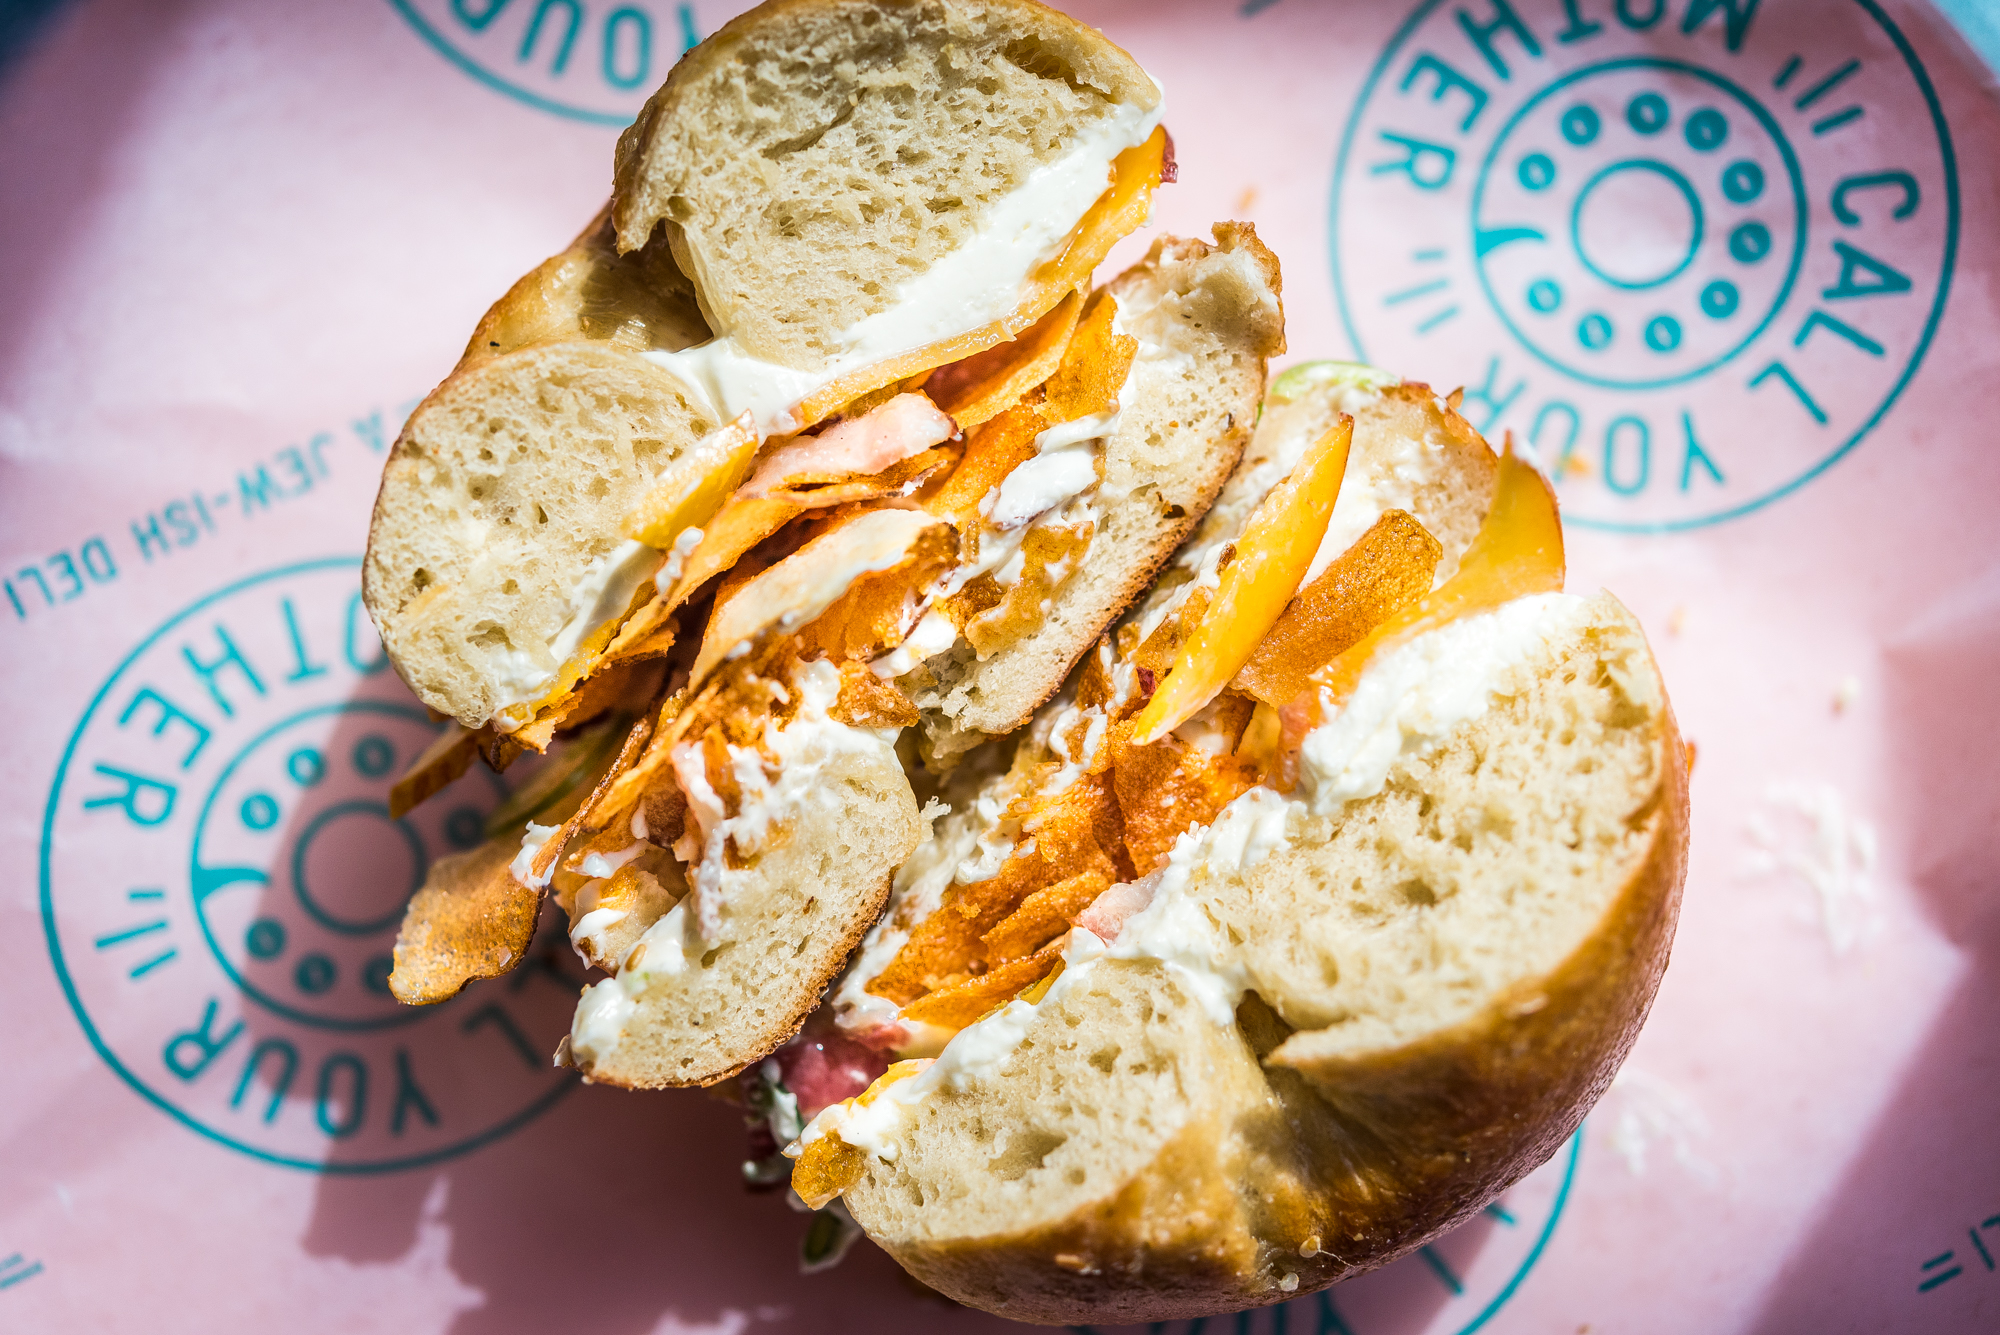 A bagel sandwich at Call Your Mother.